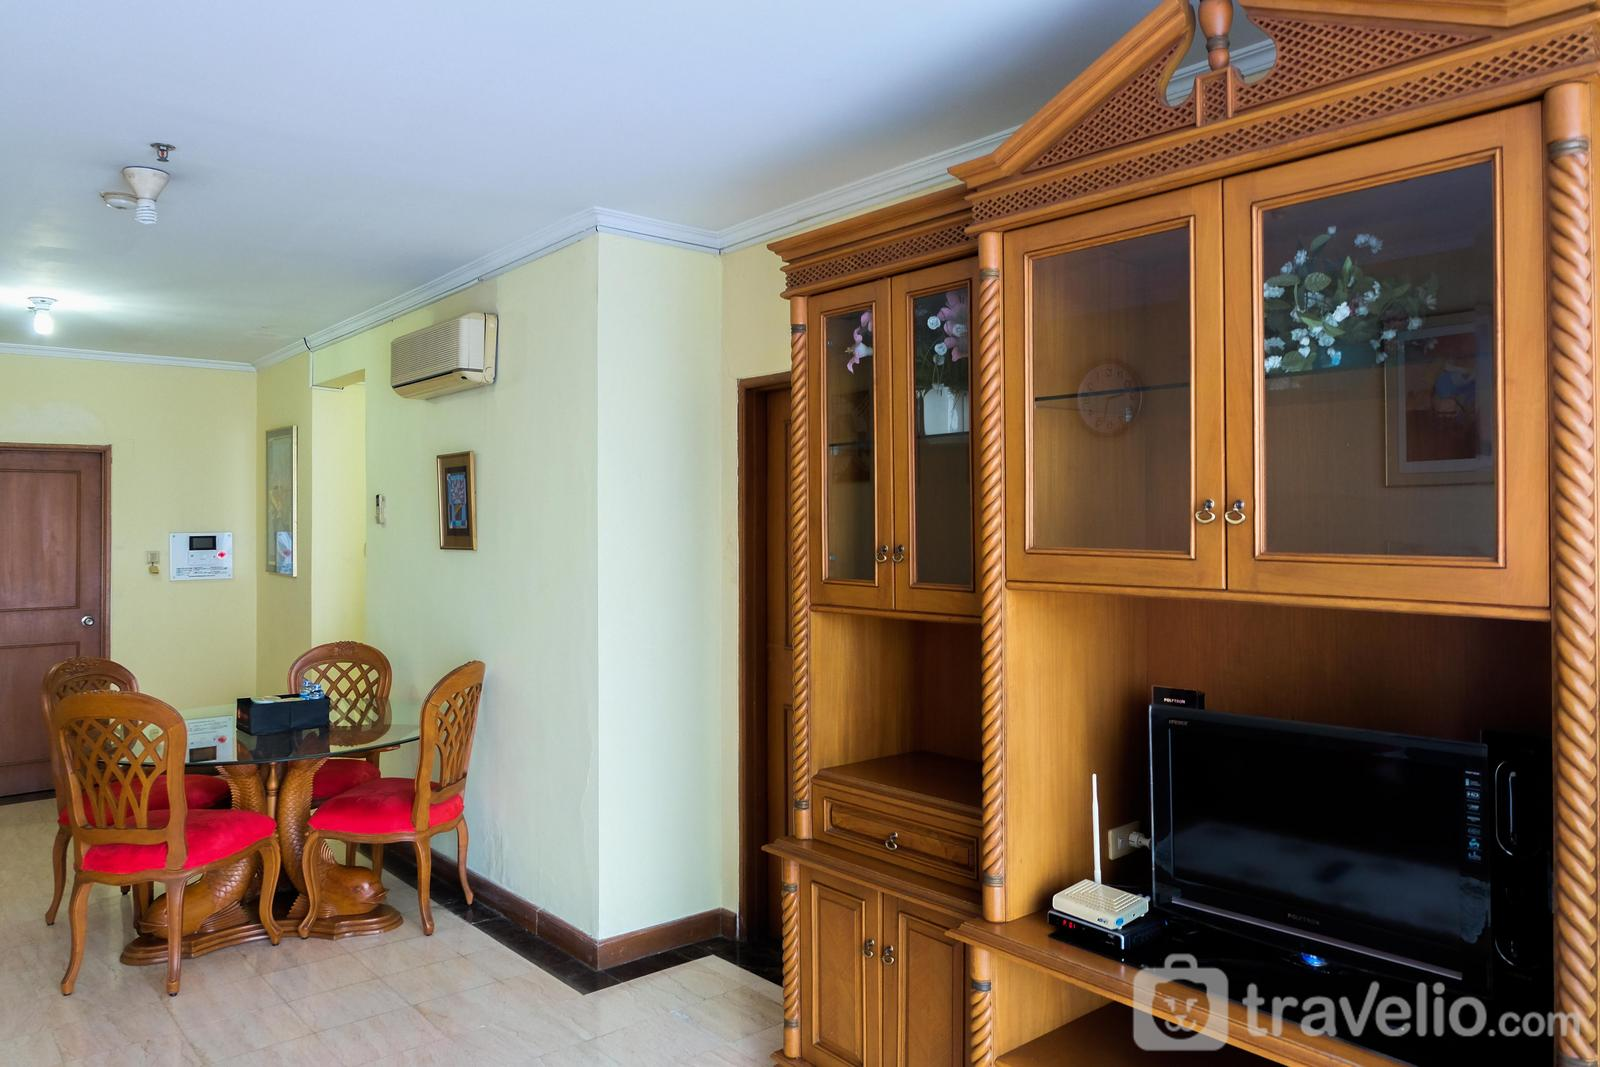 Apartemen Red Top - Classic Style 2BR At Redtop Apartment near Juanda By Travelio